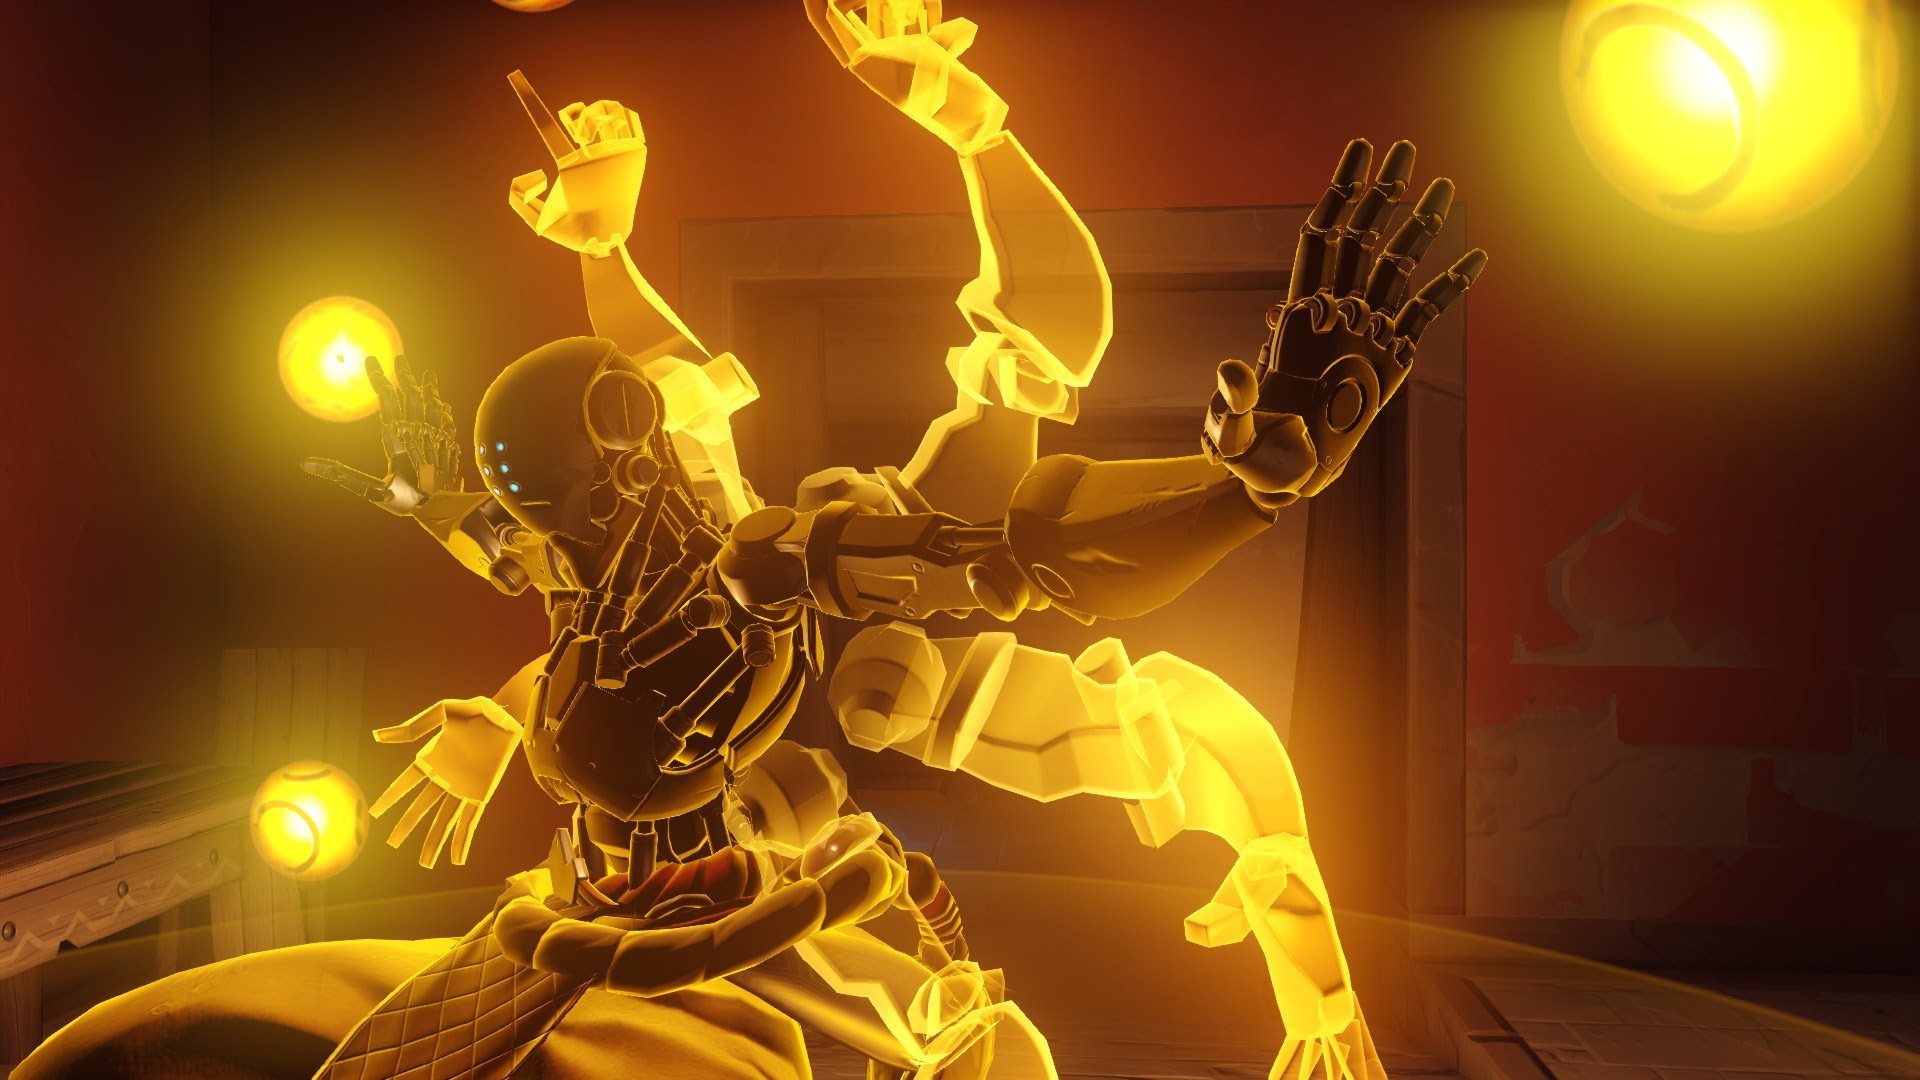 Overwatch Zenyatta Wallpaper ·① Download Free Cool High